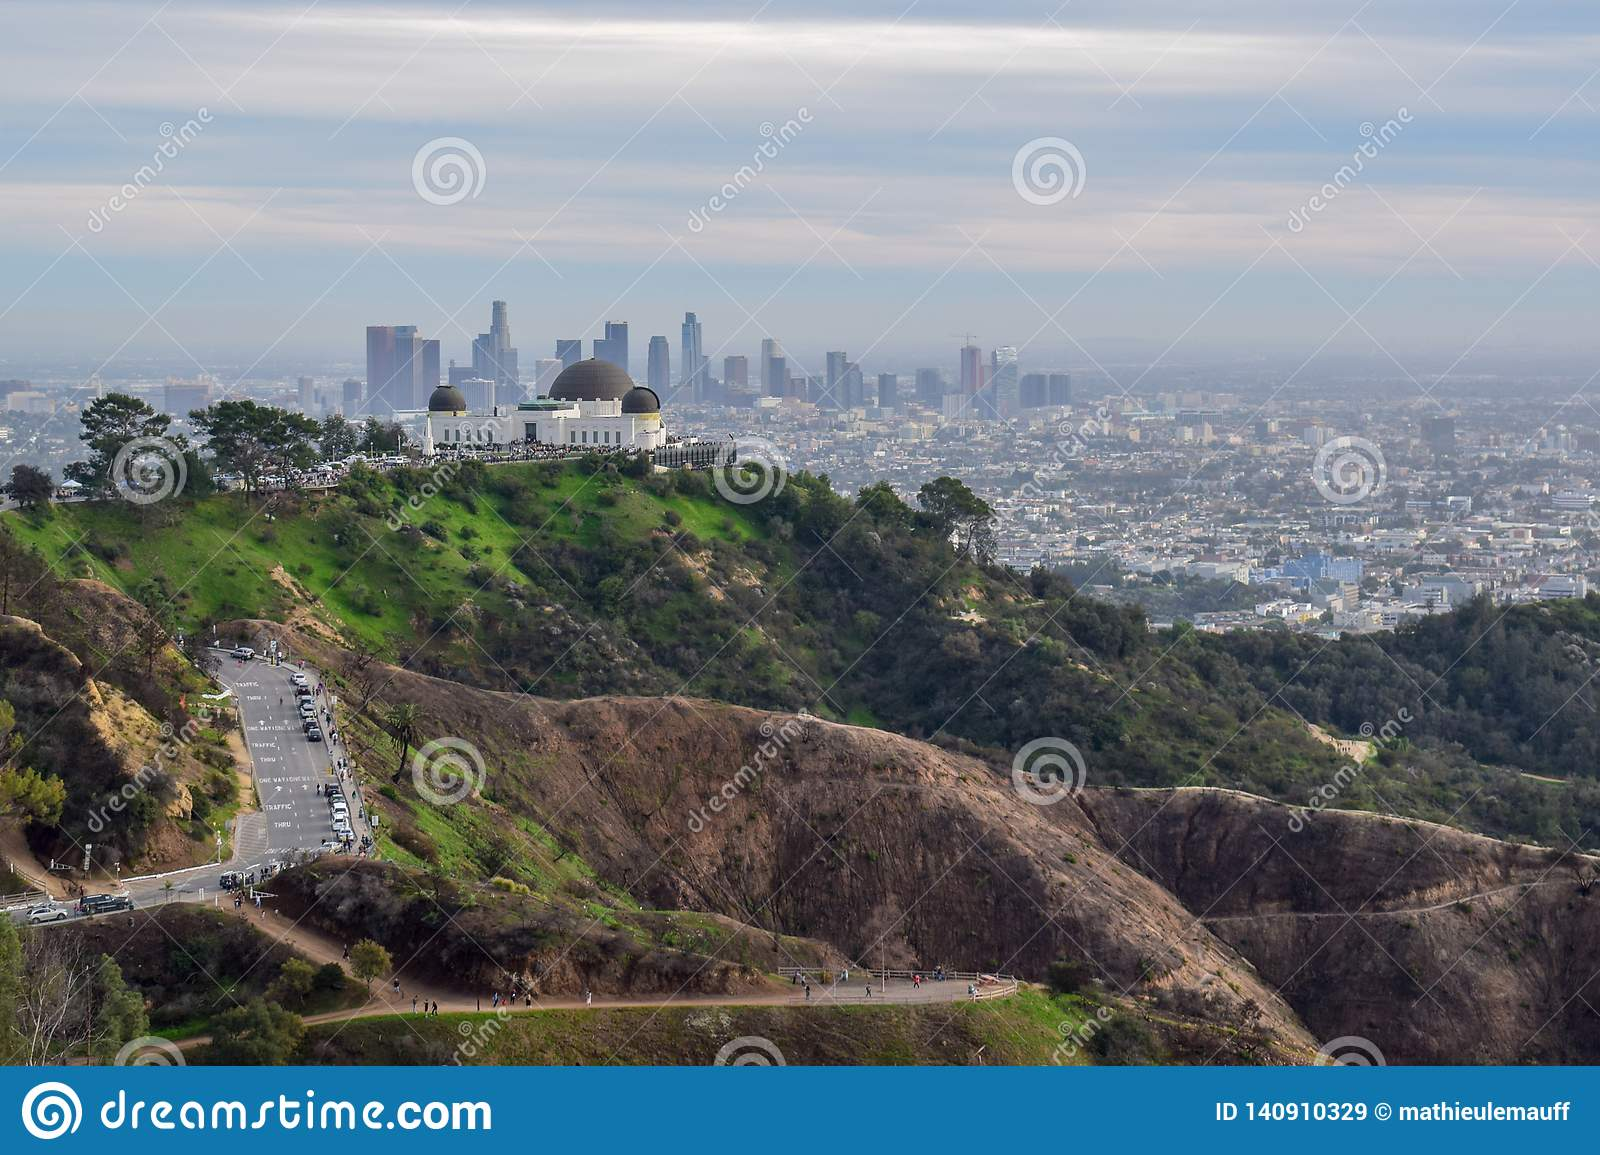 Los Angeles Skyline and Nature from Mount Hollywood